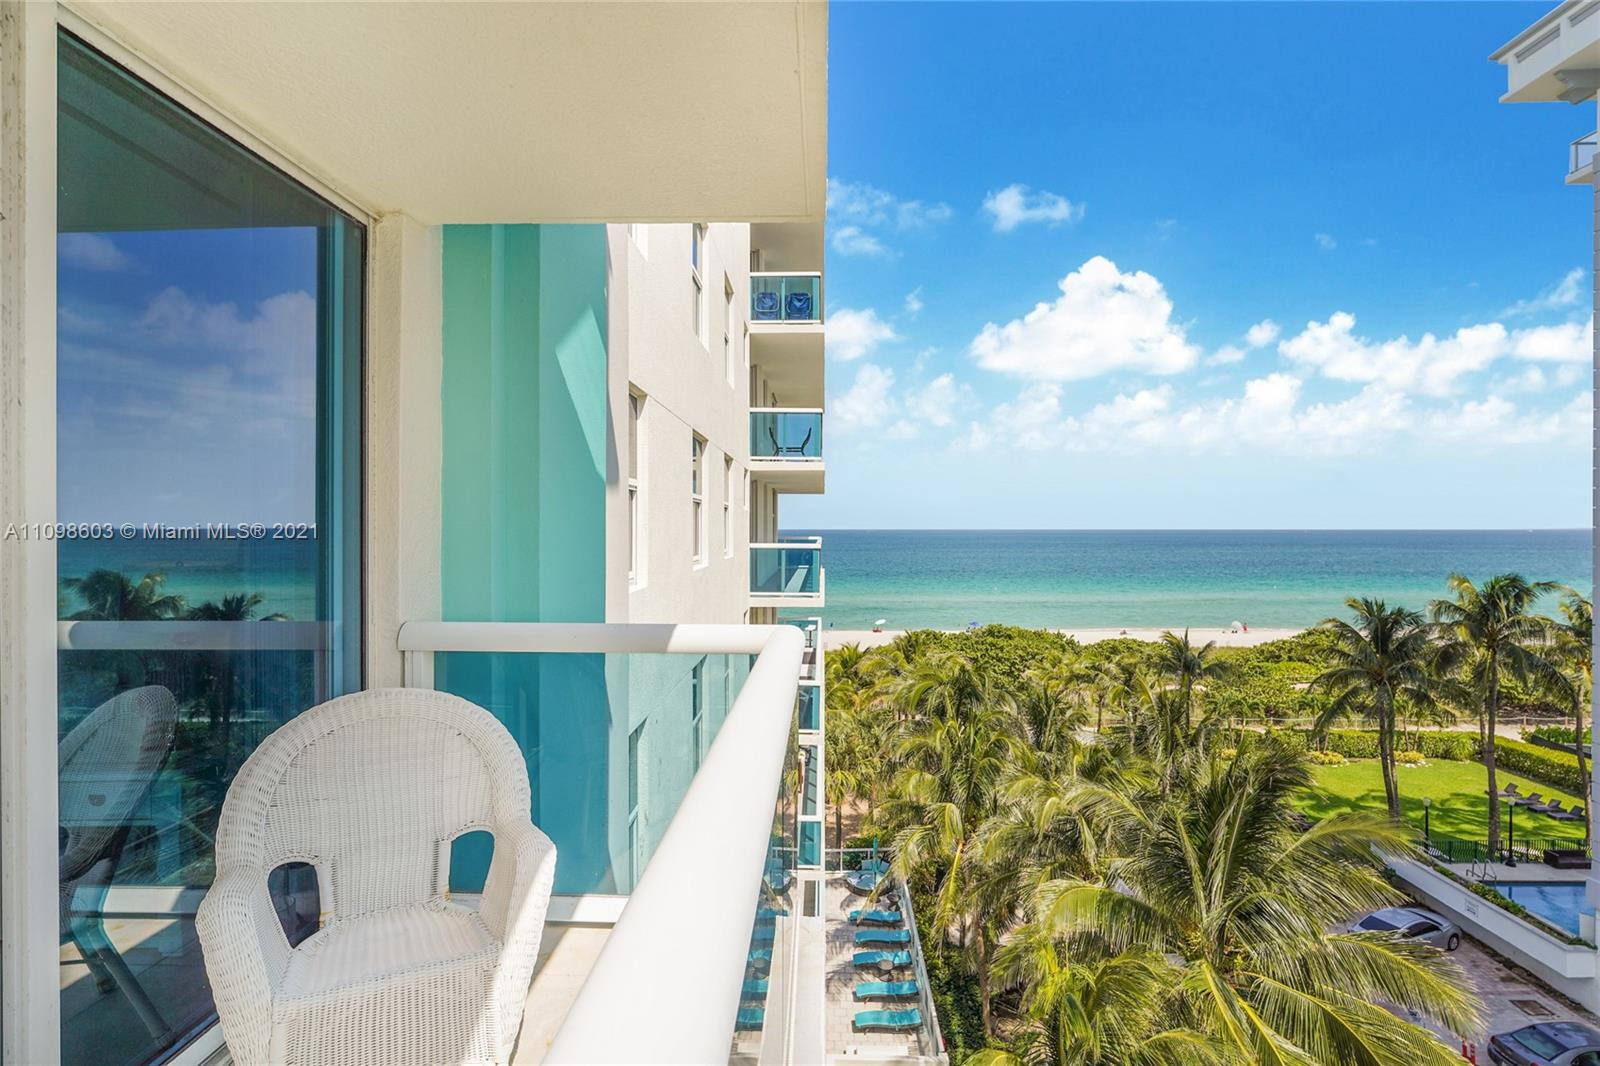 """OCEAN FRONT!! Exclusive BOUTIQUE BLDG. Beautiful 2 beds 2 baths fully renovated four years ago with Porcelain Tile Floors, fully decorated in a nice Beach white motif and earth tones. Great Building Amenities: 2 Heated Pools with Jacuzzi, Ocean Lounge, Chairs and Umbrella Service, Barbecue, Beach Volleyball, Gym, Billiard Room, WIFI in Common Areas, Bike Storage. Walking distance to Bal Harbor Shops, Publix, Restaurants and much more. The Unit is available for sale and rent. """"Special Assessment $302.21 monthly until December 2023"""""""